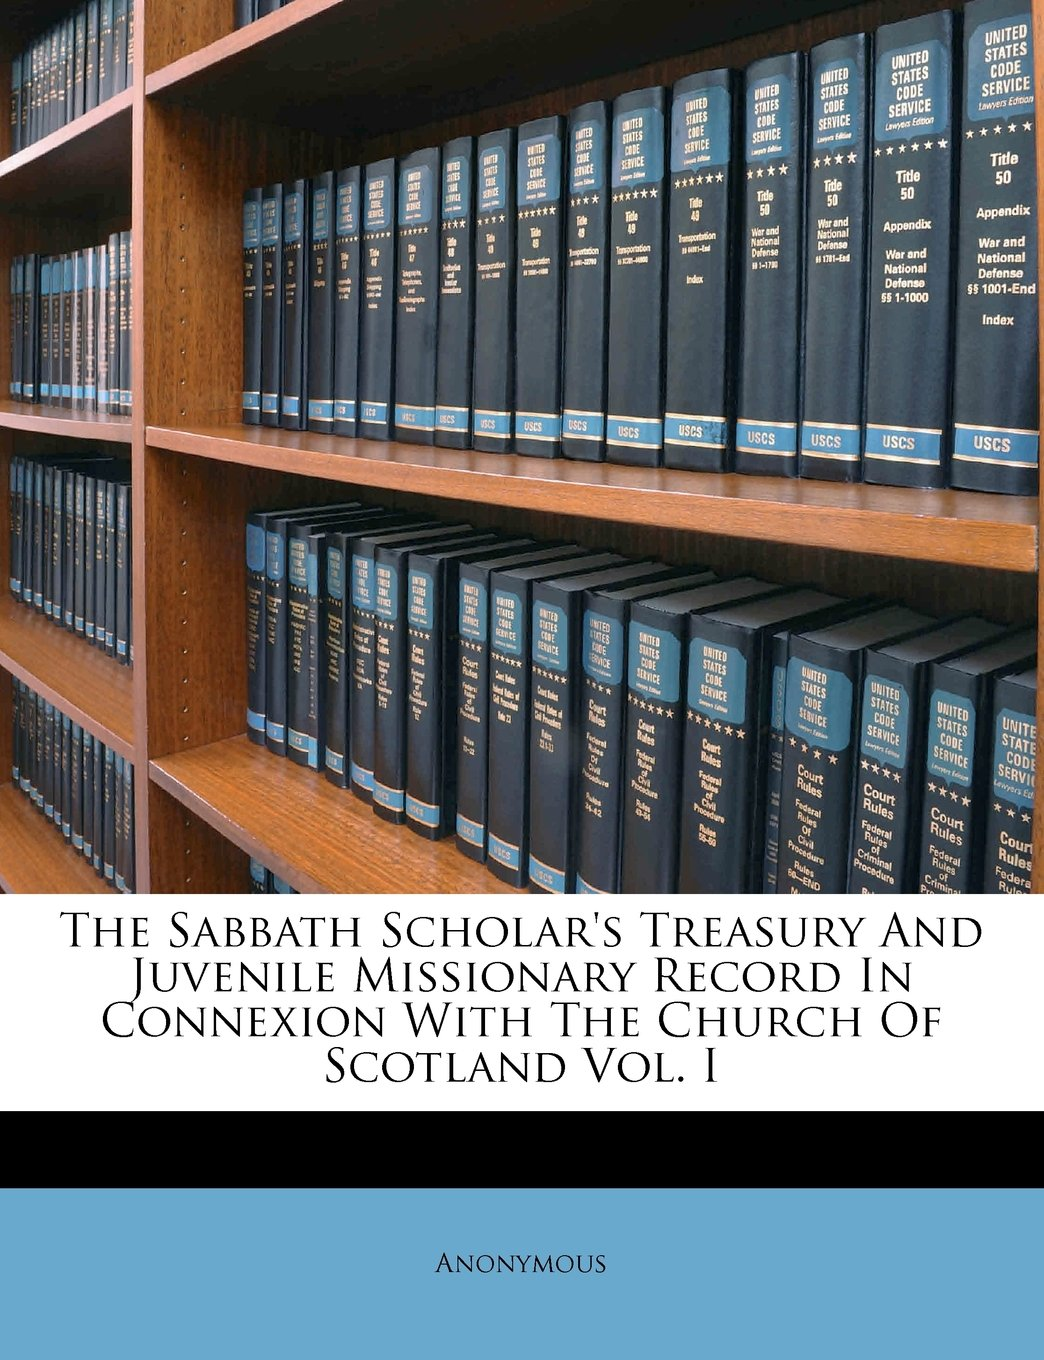 Download The Sabbath Scholar's Treasury And Juvenile Missionary Record In Connexion With The Church Of Scotland Vol. I PDF